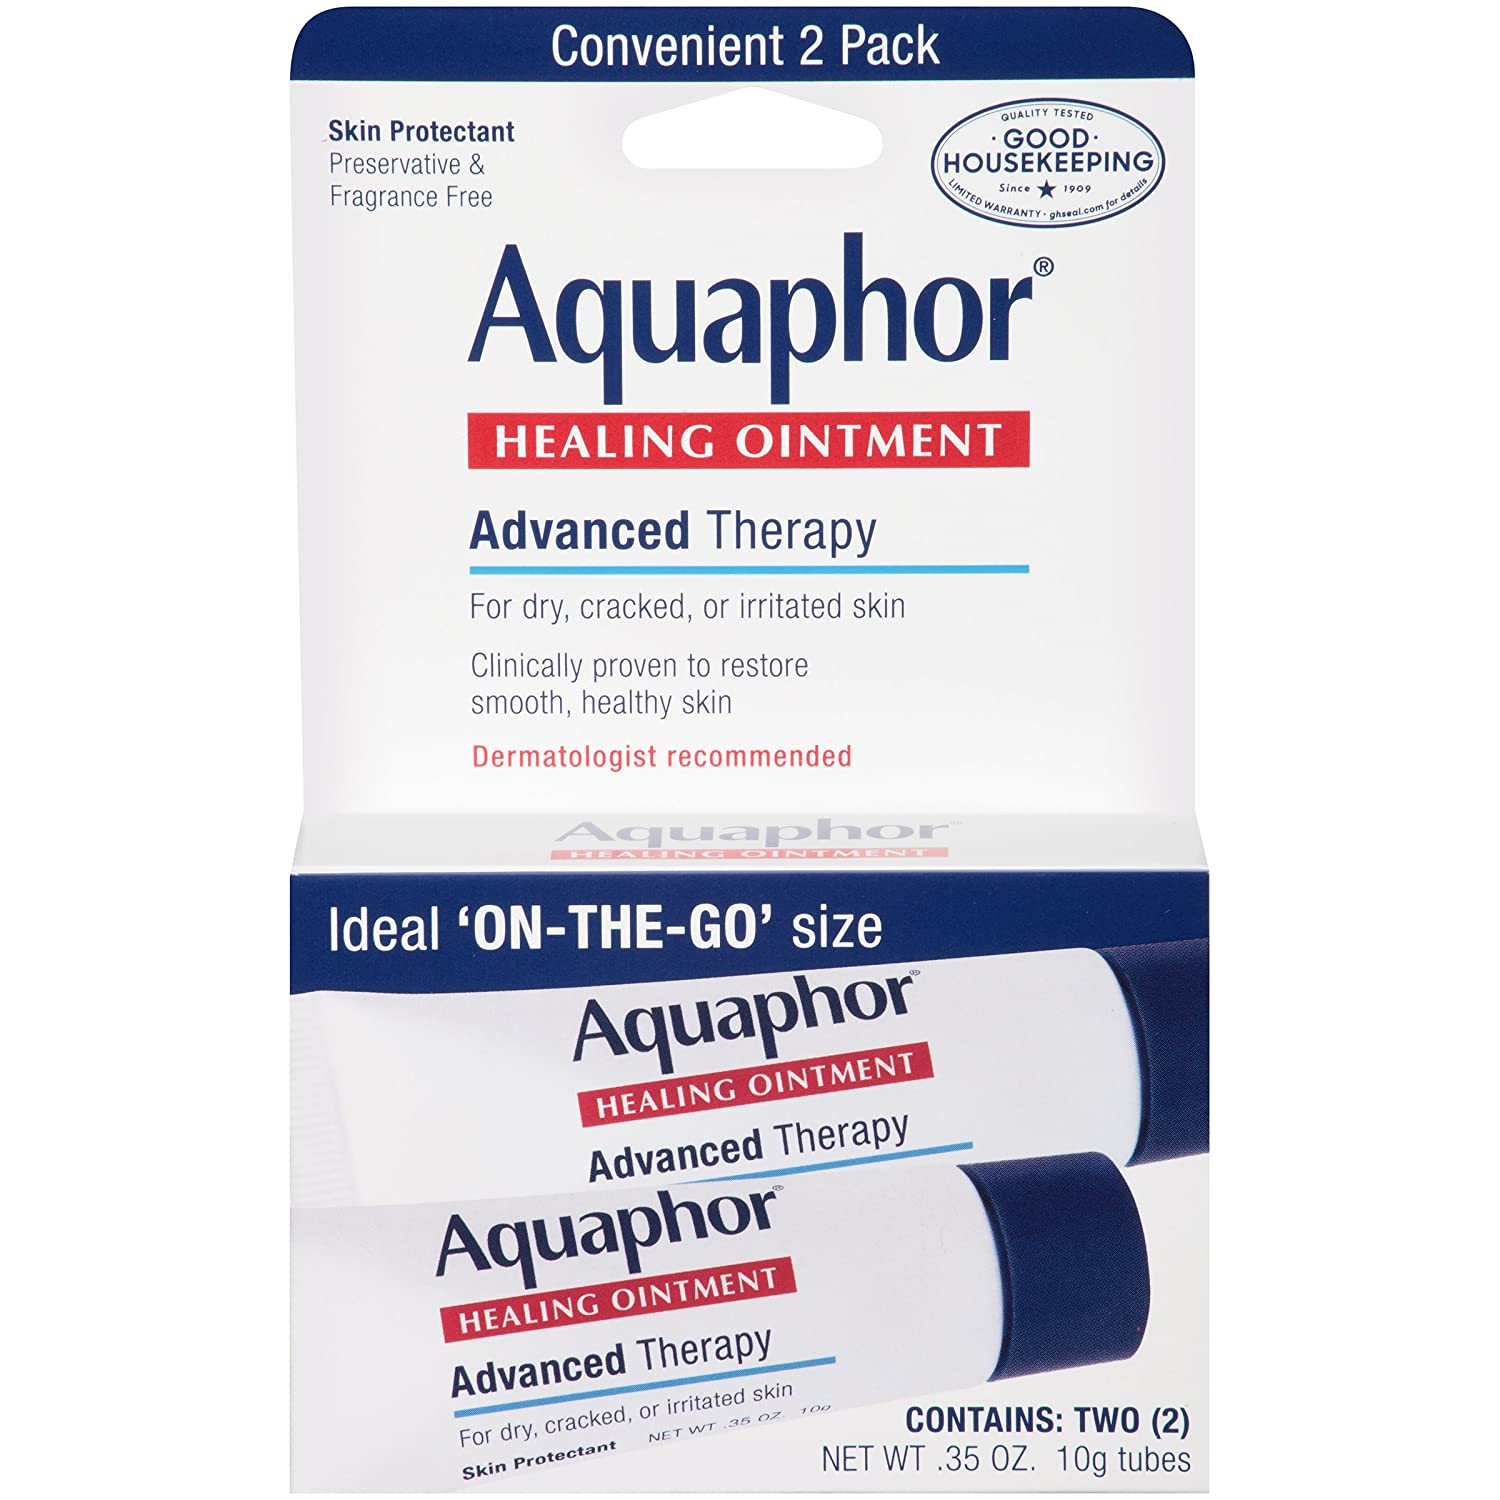 Eucerin Aquaphor Healing Ointment for Dry Cracked Chapped Skin and Lips for Unisex, 2 X 0.35 Ounce U-SC-2608